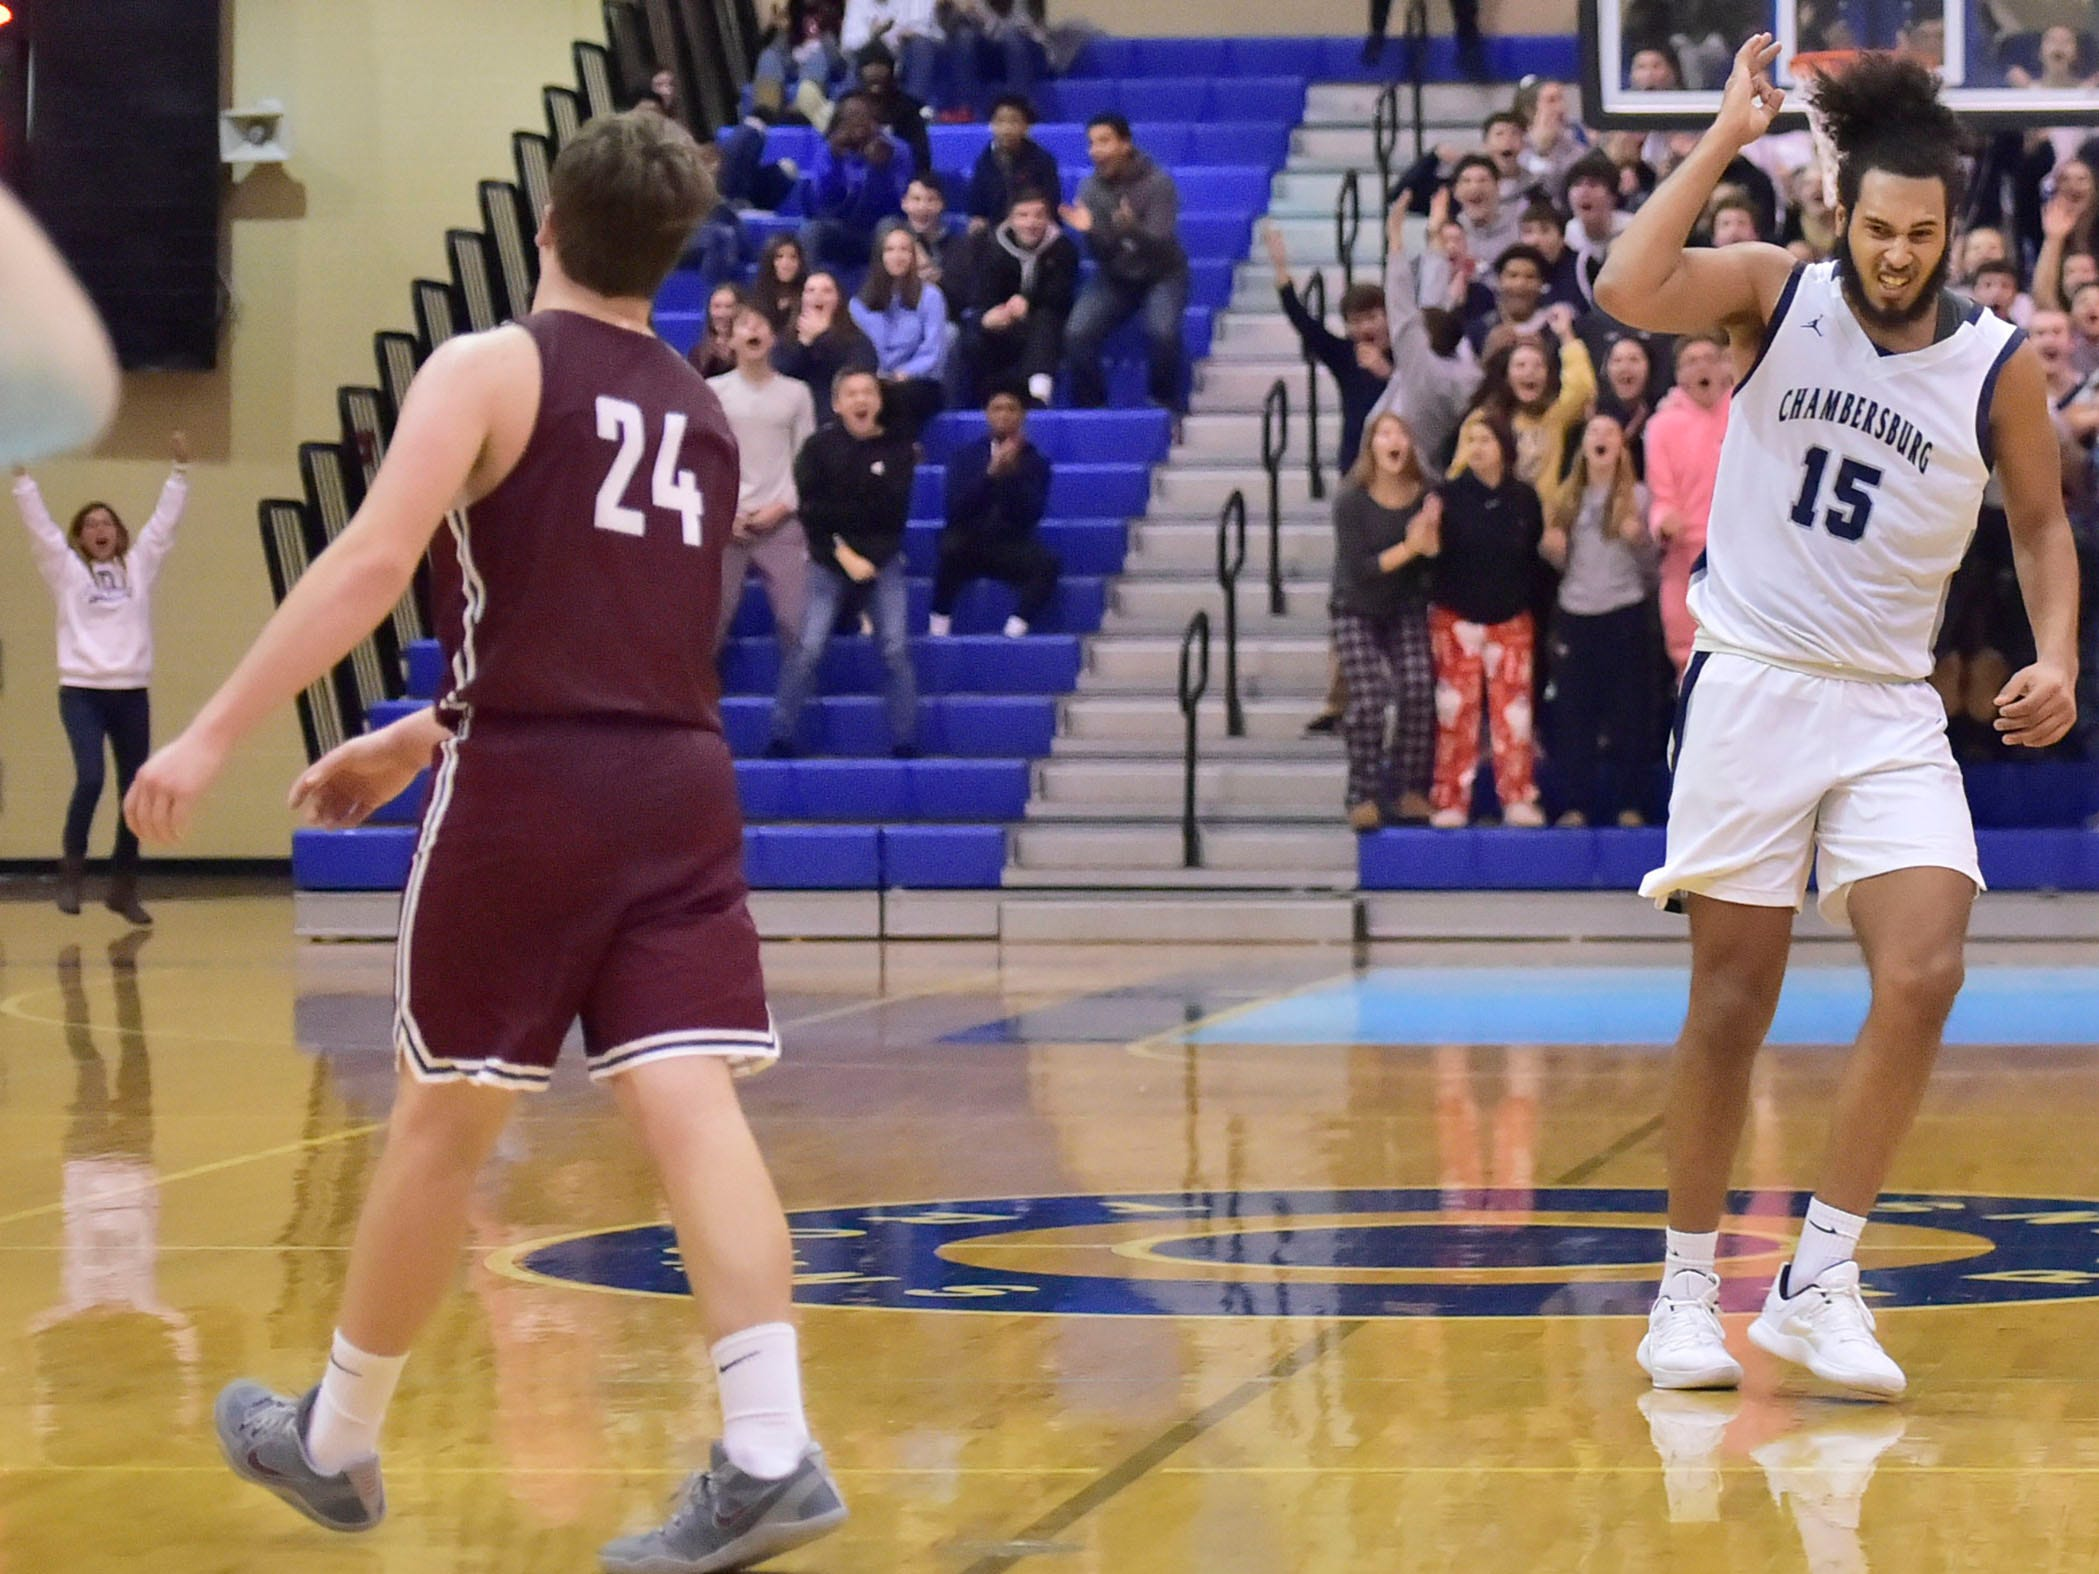 Tyler Collier of Chambersburg celebrartes after hitting a shot to tie the game late in the 4th. Chambersburg dropped a buzzer-beater 42-40 to State College during  D3 basketball, Friday, Dec. 14, 2018.